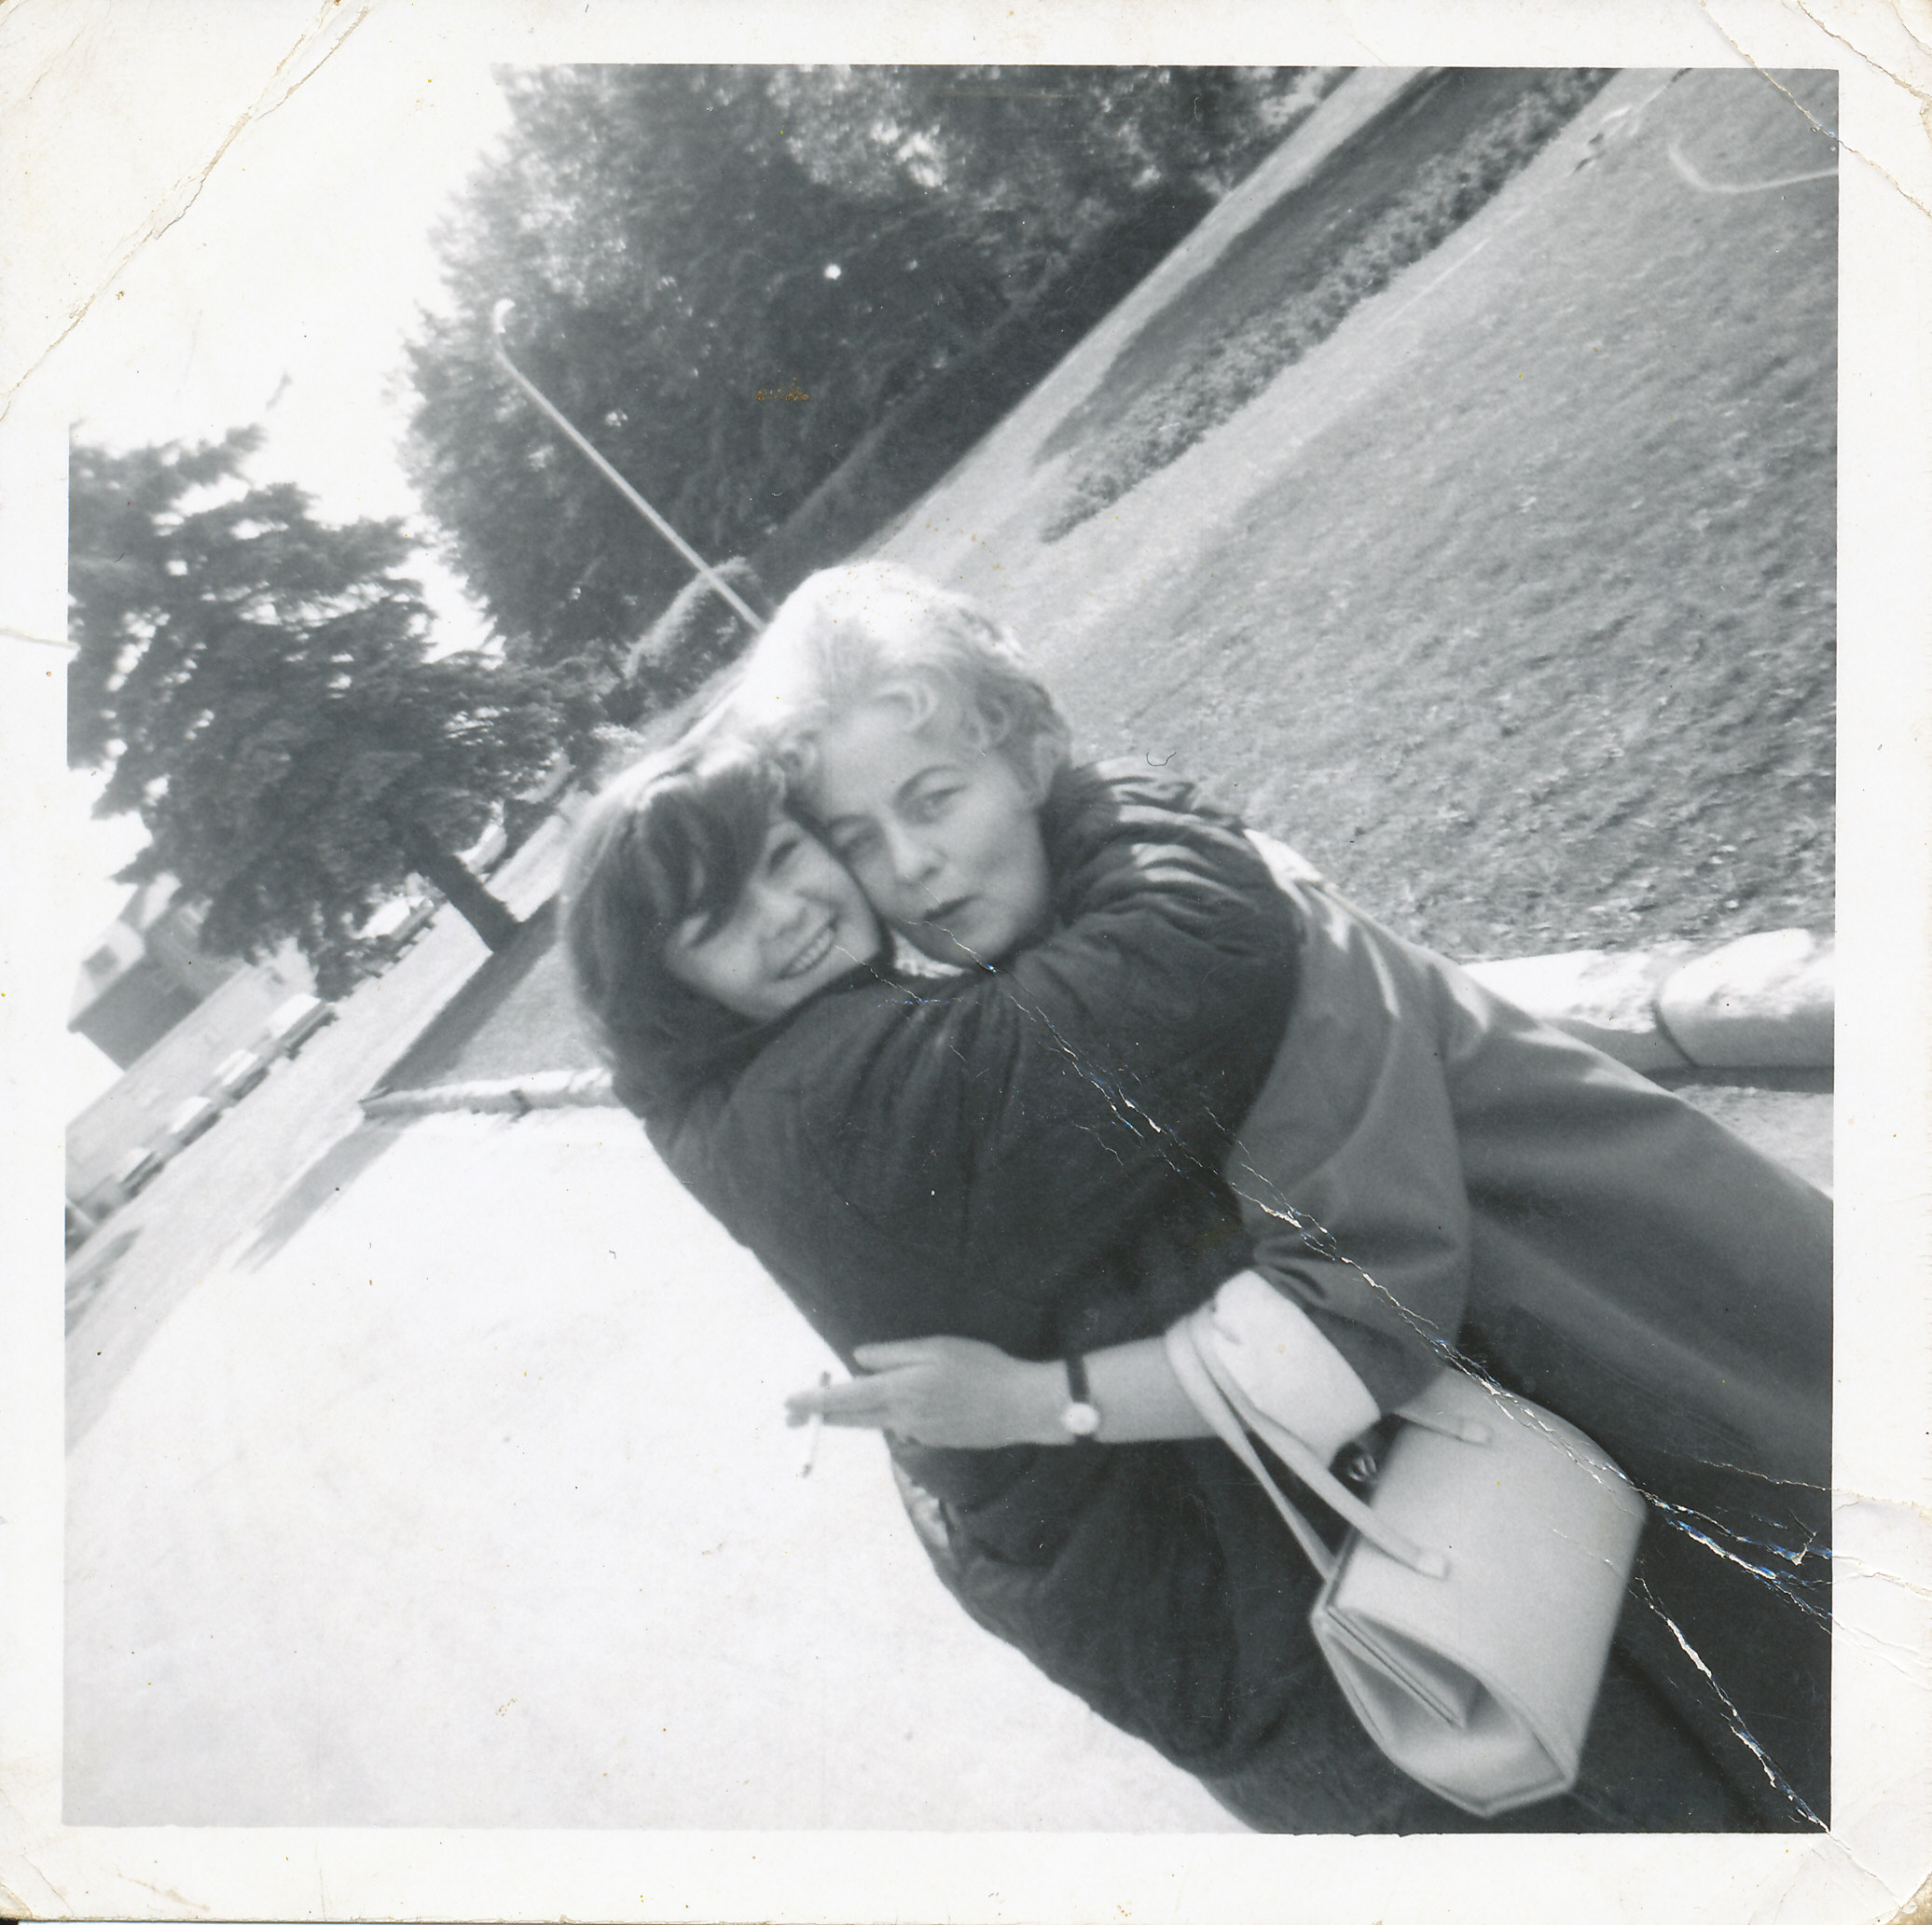 young woman and old woman hugging, 1960s style clothing